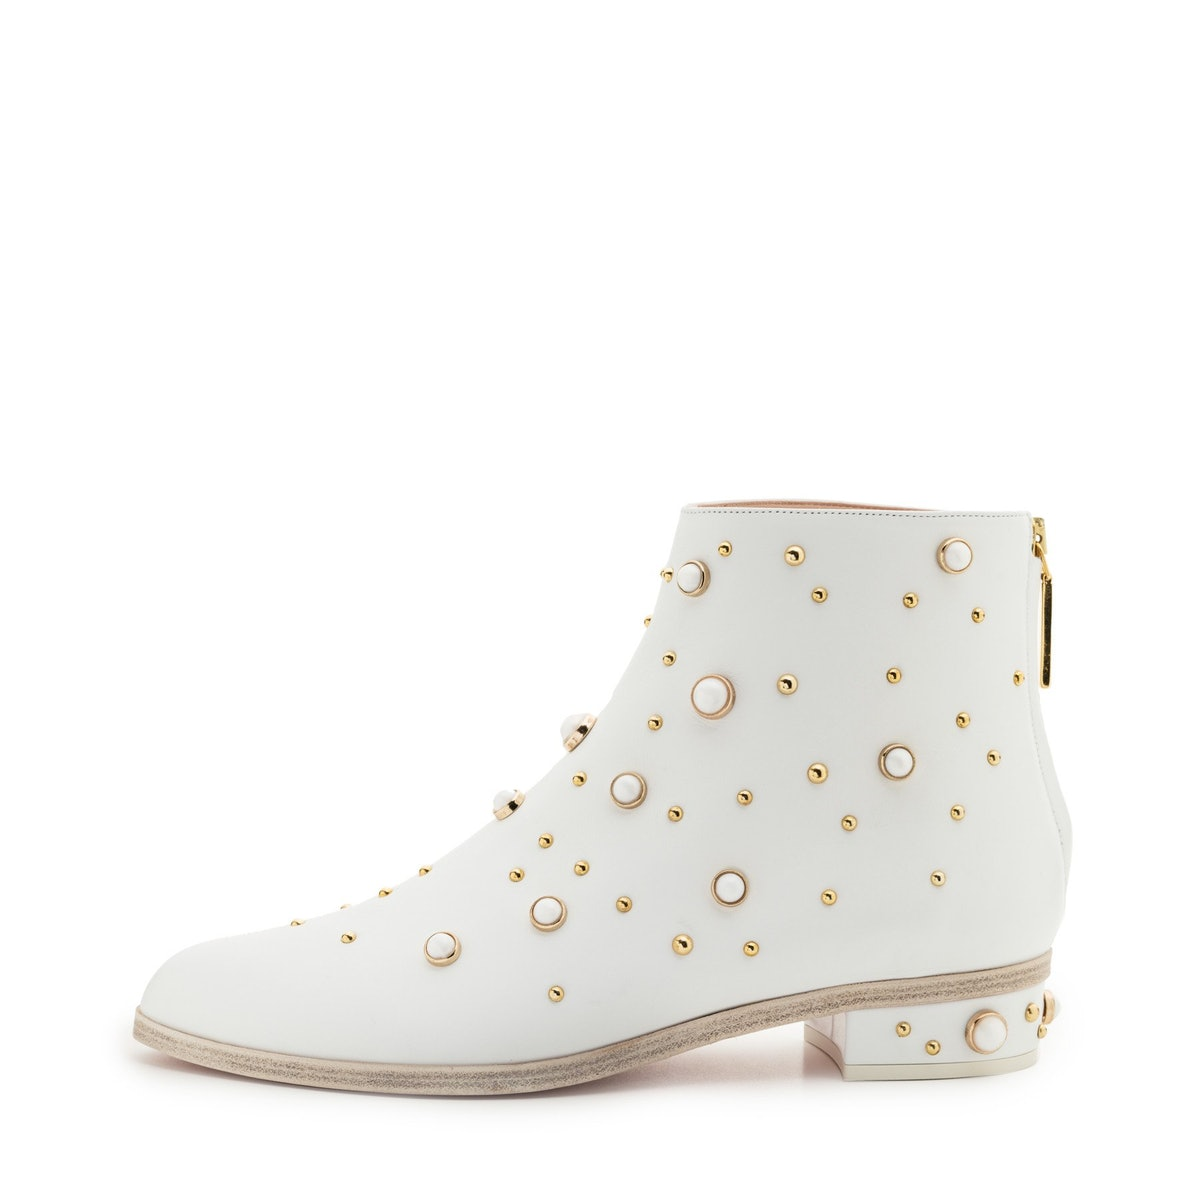 White Magnetic Calf boot from Kendall Miles.